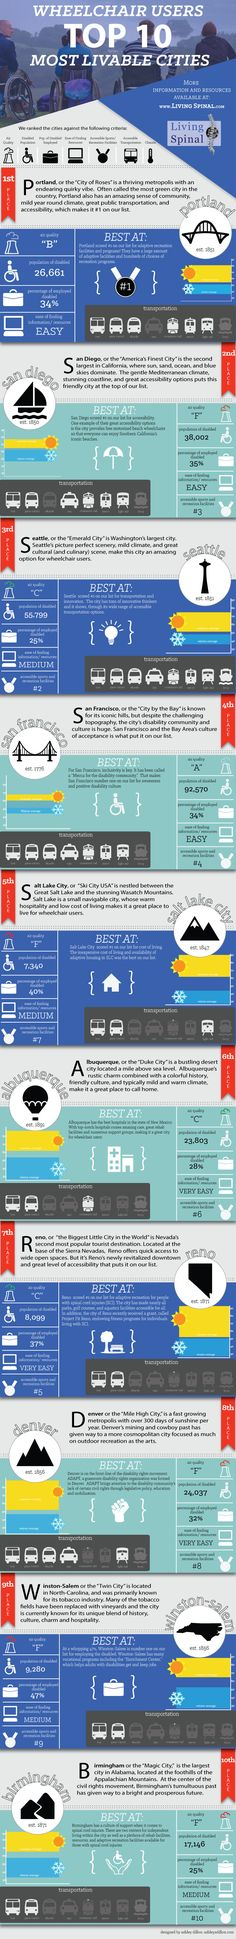 Top Ten Best #Places to Live for #Wheelchair Users - Do you fancy an infographic? There are a lot of them online, but if you want your own please visit http://www.linfografico.com/prezzi/ Online girano molte infografiche, se ne vuoi realizzare una tutta tua visita http://www.linfografico.com/prezzi/